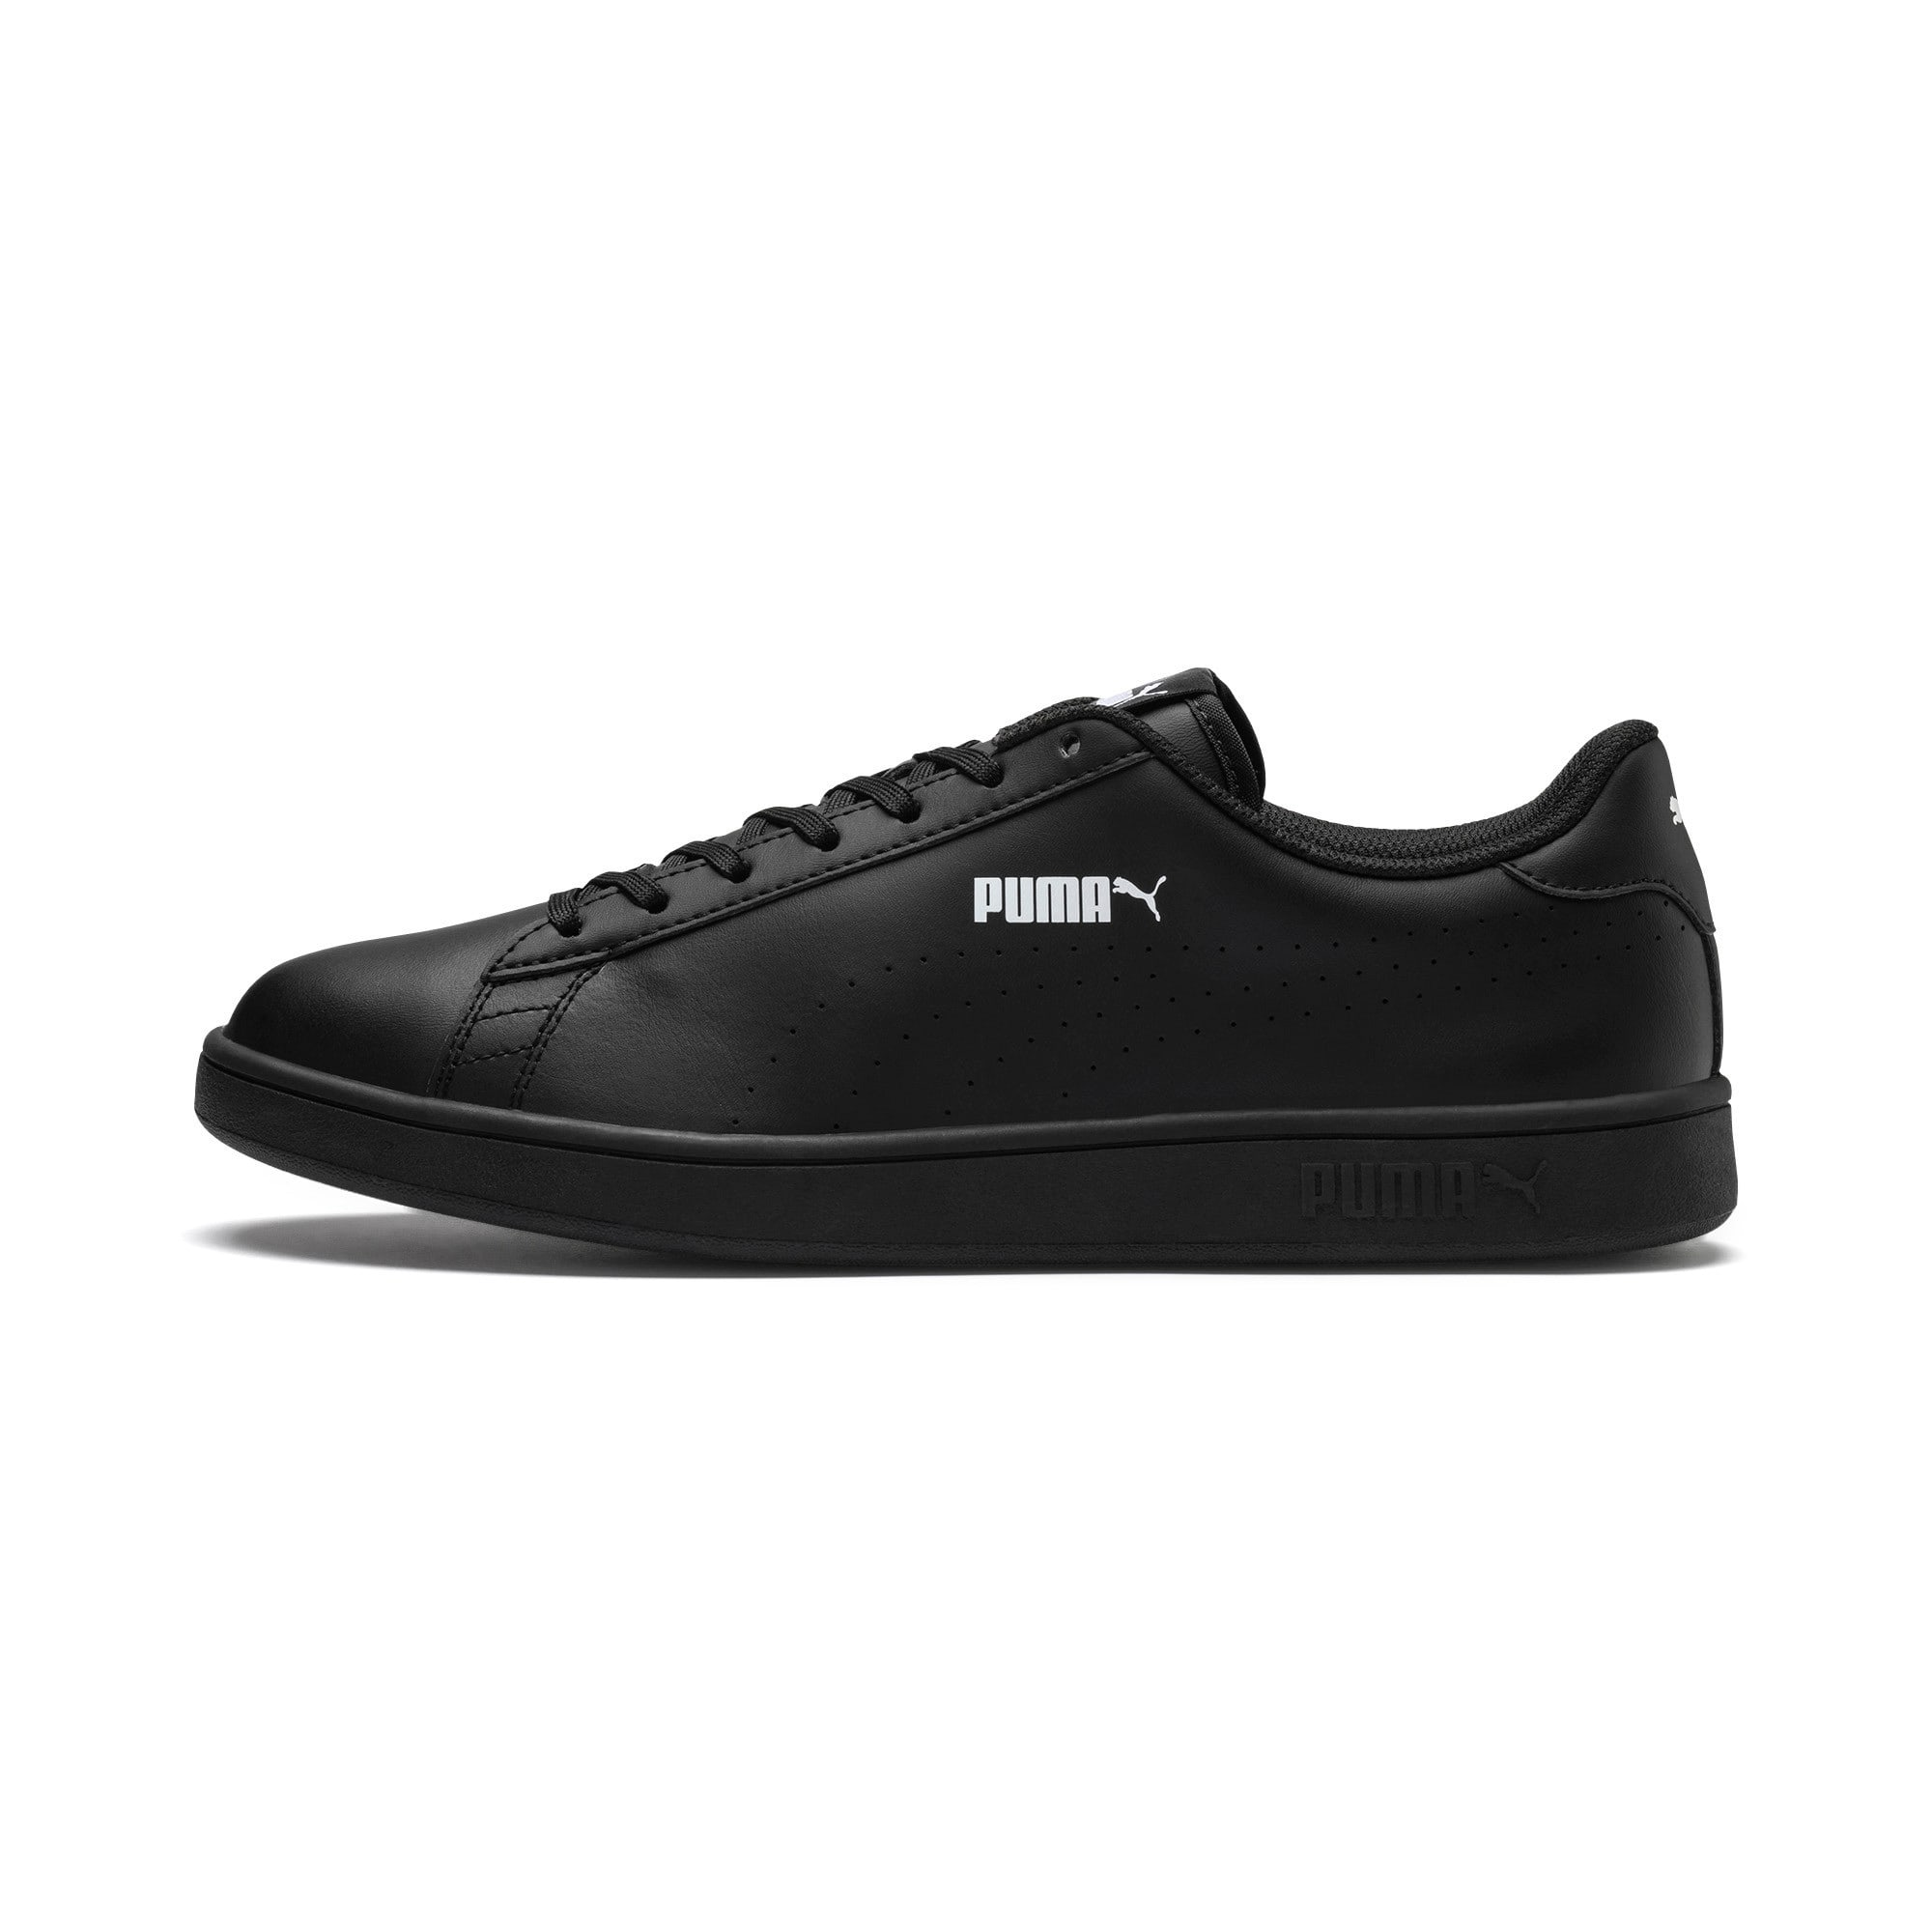 Thumbnail 1 of Smash v2 L Perf Trainers, Puma Black-Puma Black, medium